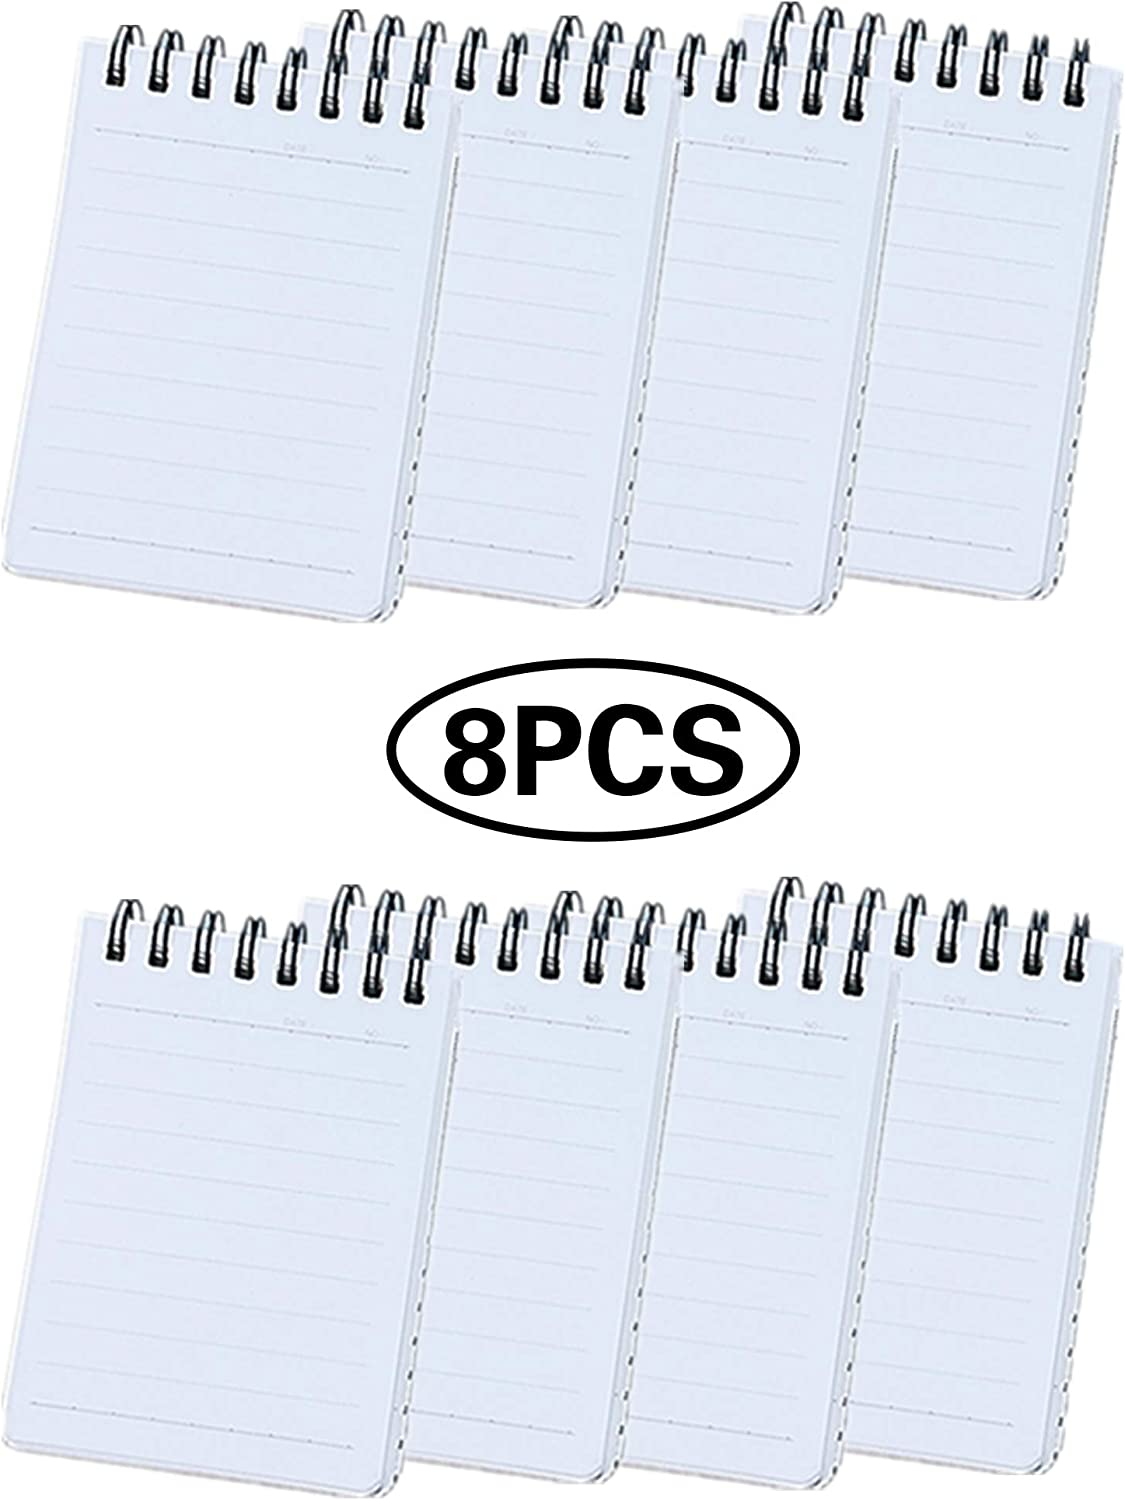 640 Pages Index Card, 3 x 4 Inch White Learning Card Note Cards 8 Pack of White Paper Ring Index Cards Bulk Index Cards for Home School Office